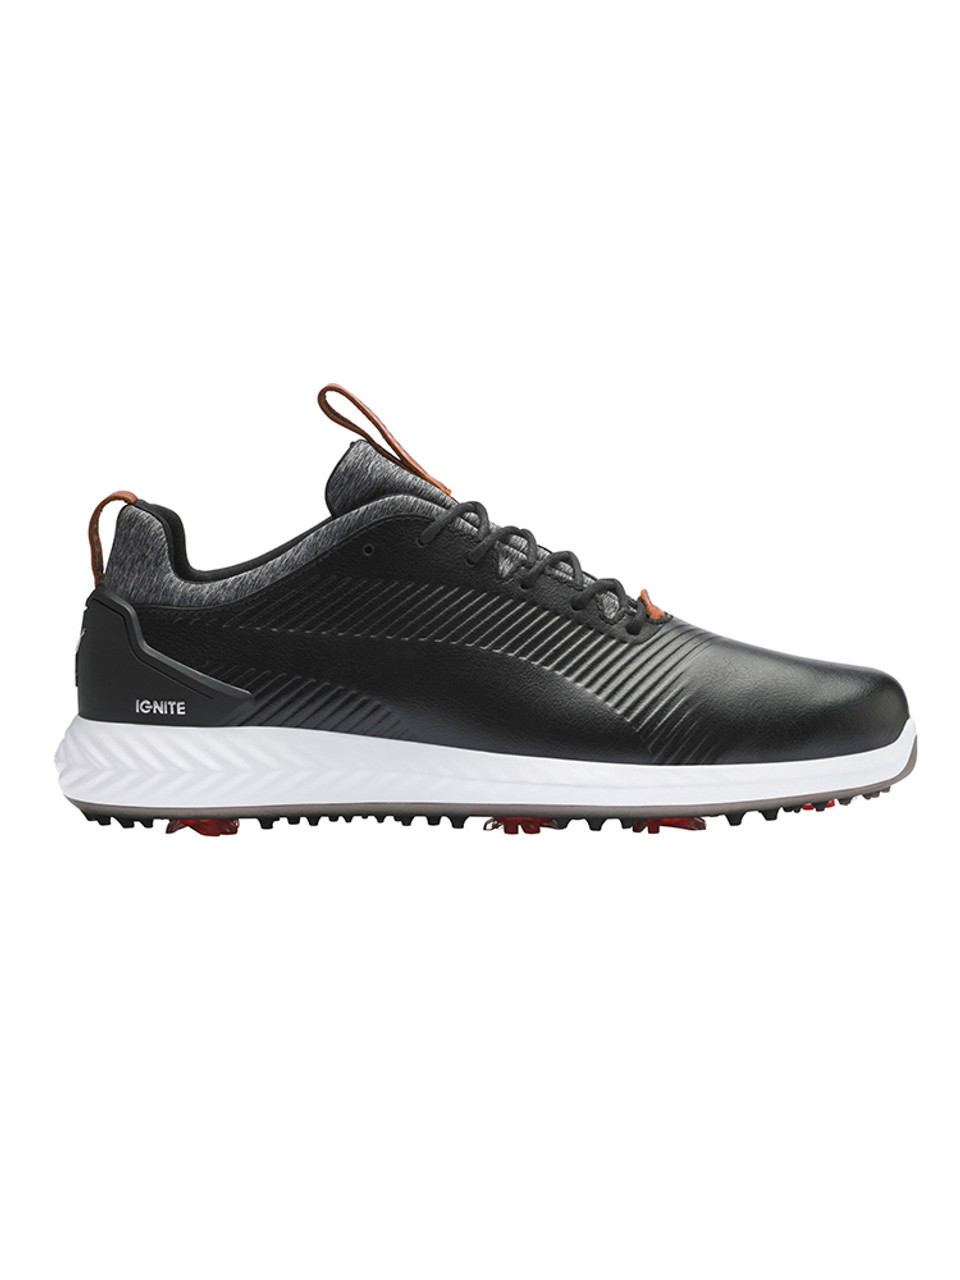 Puma IGNITE PWRADAPT Leather 2.0 Golf Shoes Puma Black